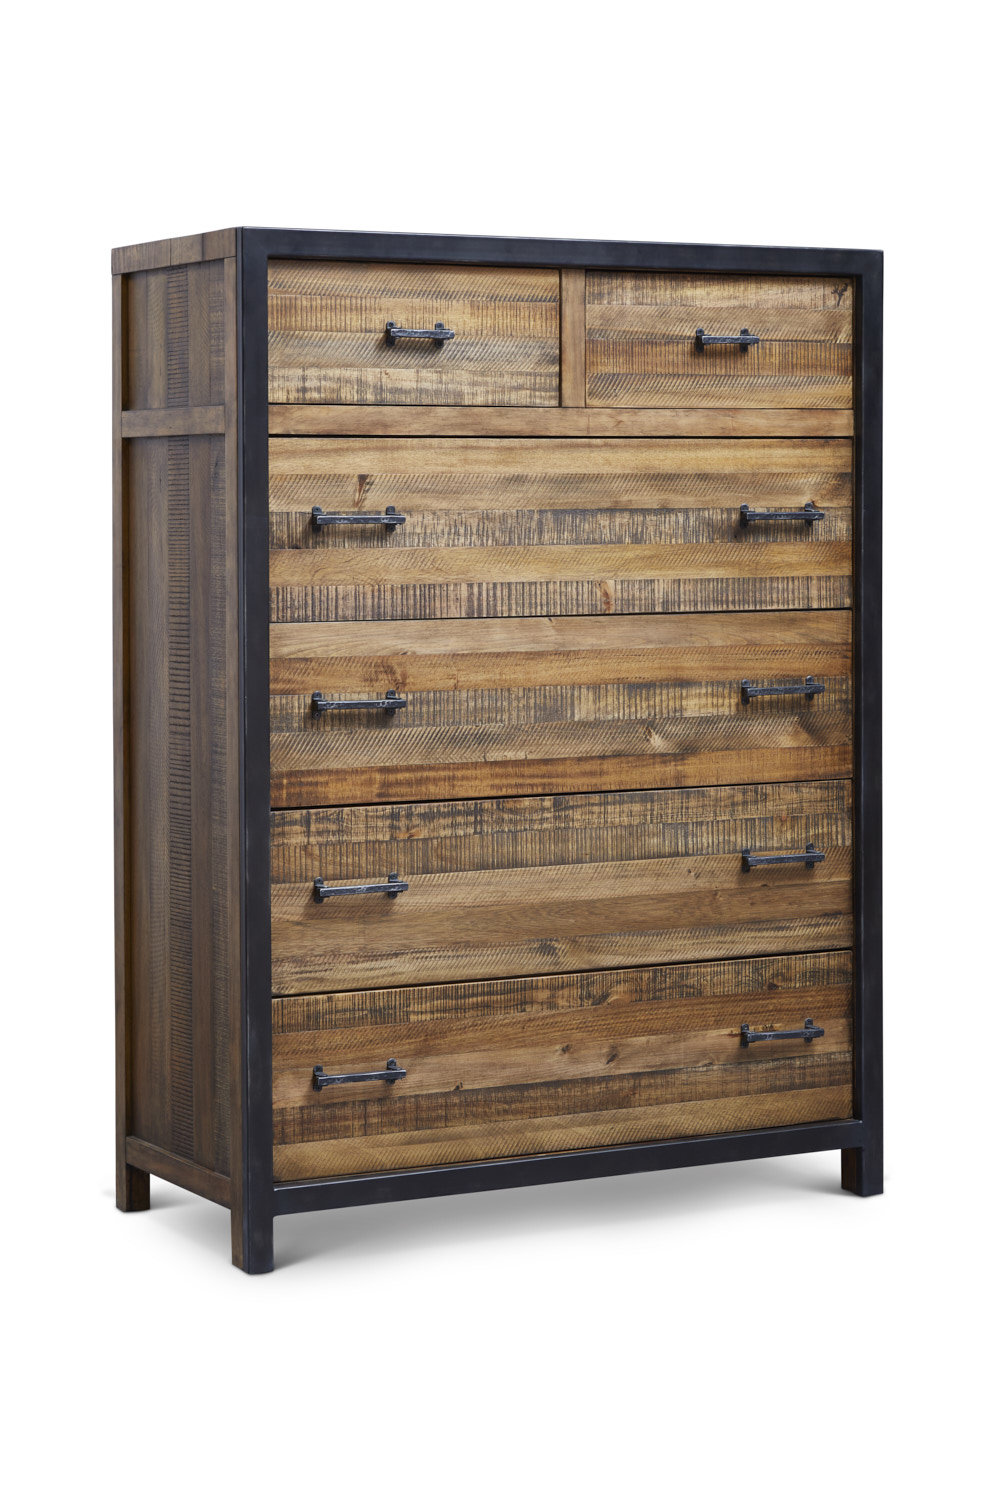 "Urban Frontier 6 Drawer Chest  Item # DI-188107 Dimensions: 42""W x 19""D x 56.75""H"